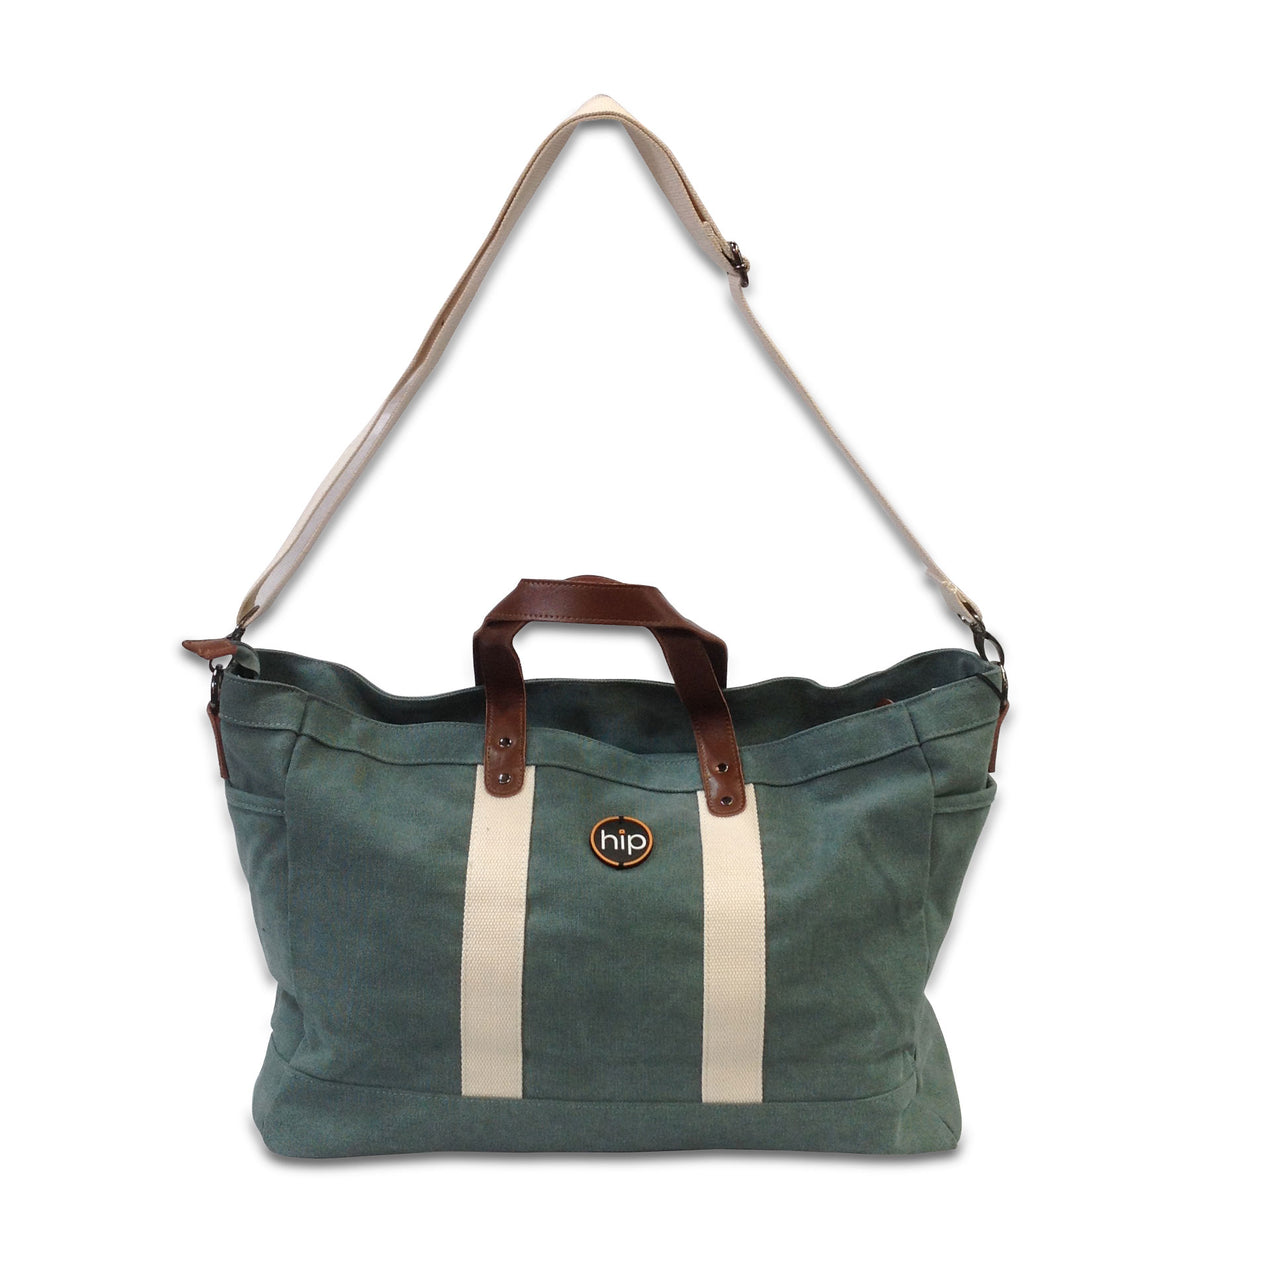 Tote Travel Canvas Light Green Bag